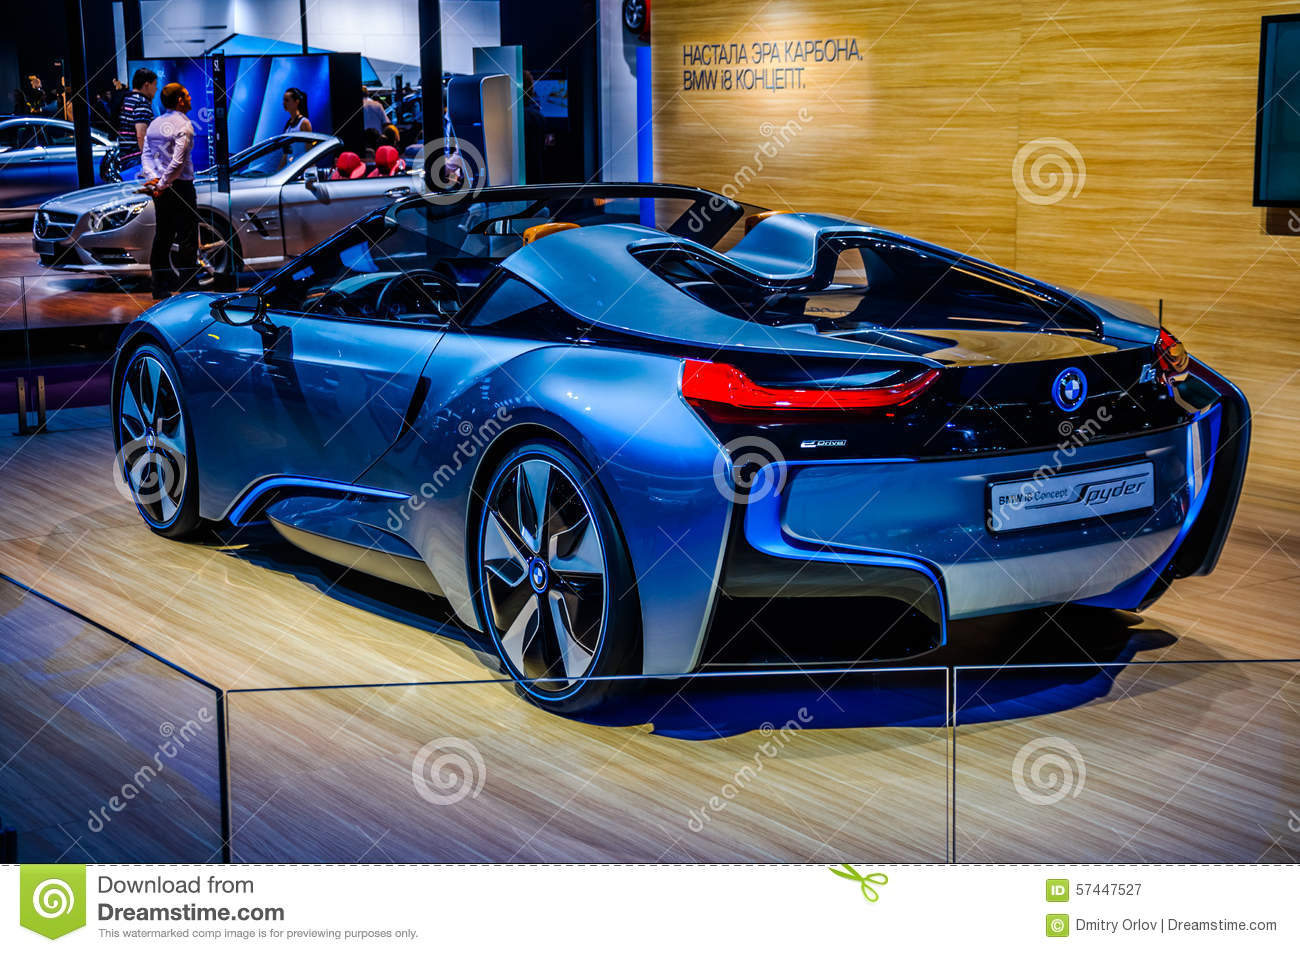 Moscow Russia Aug 2012 Bmw I8 Concept Spyder Presented As Wo